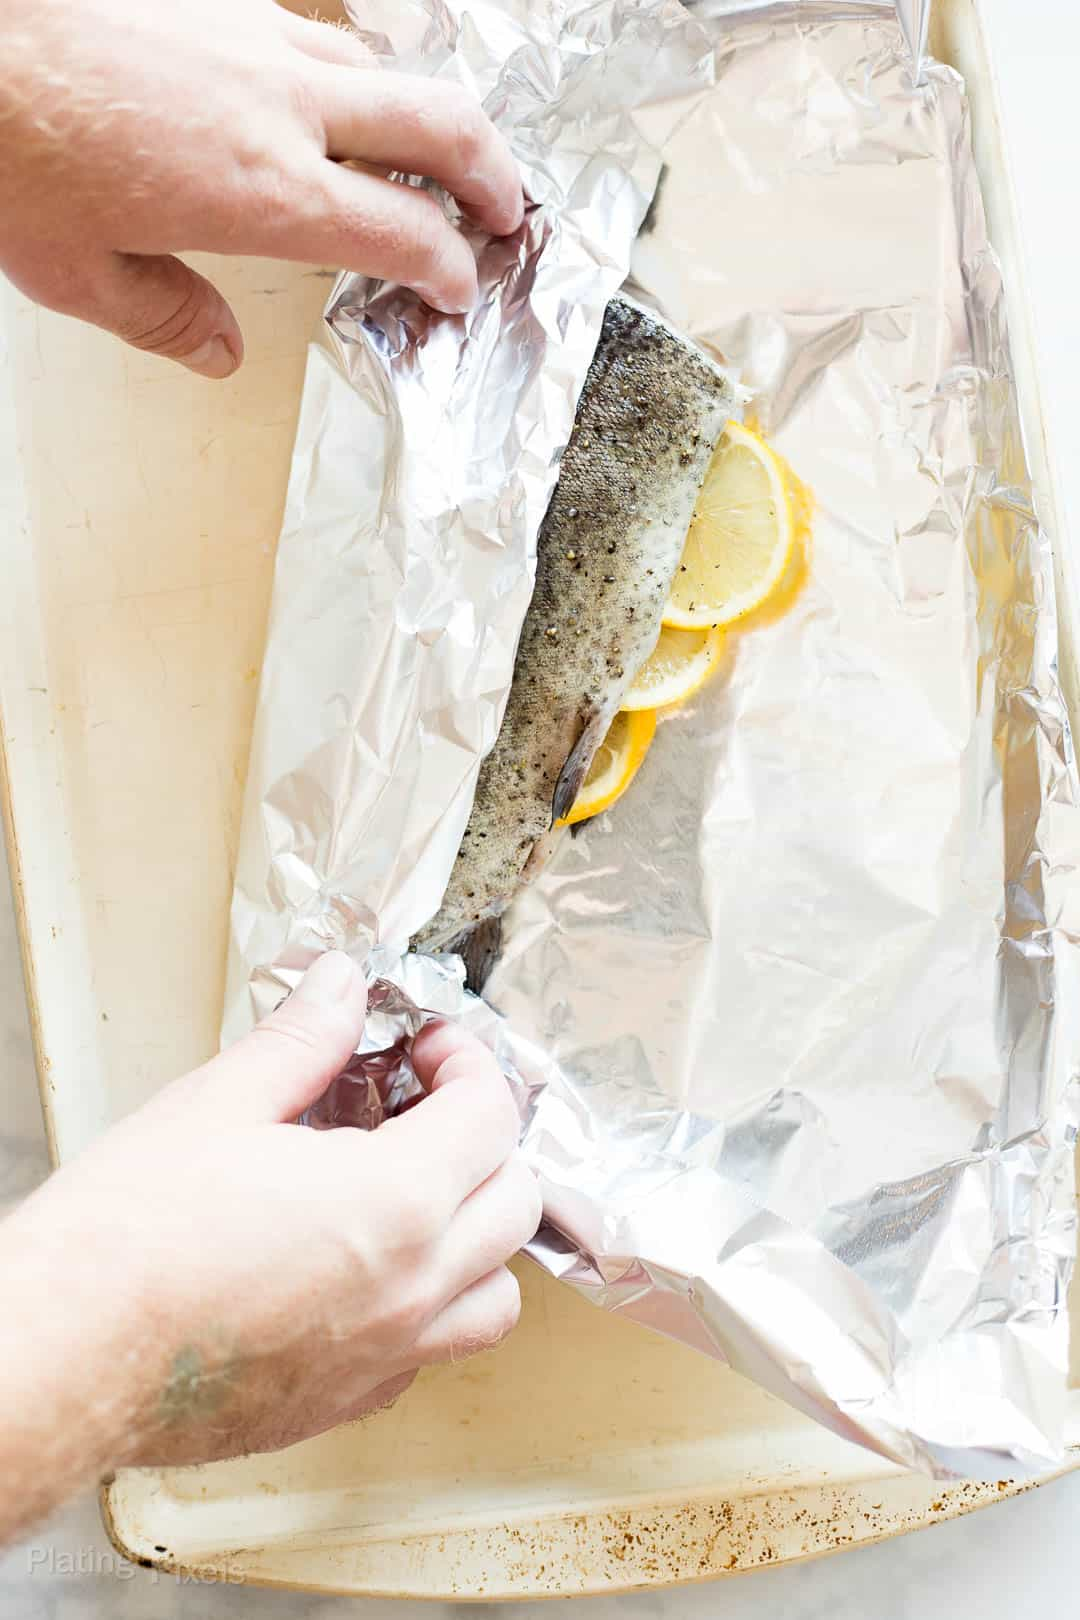 Process shot of sealing a whole trout in foil